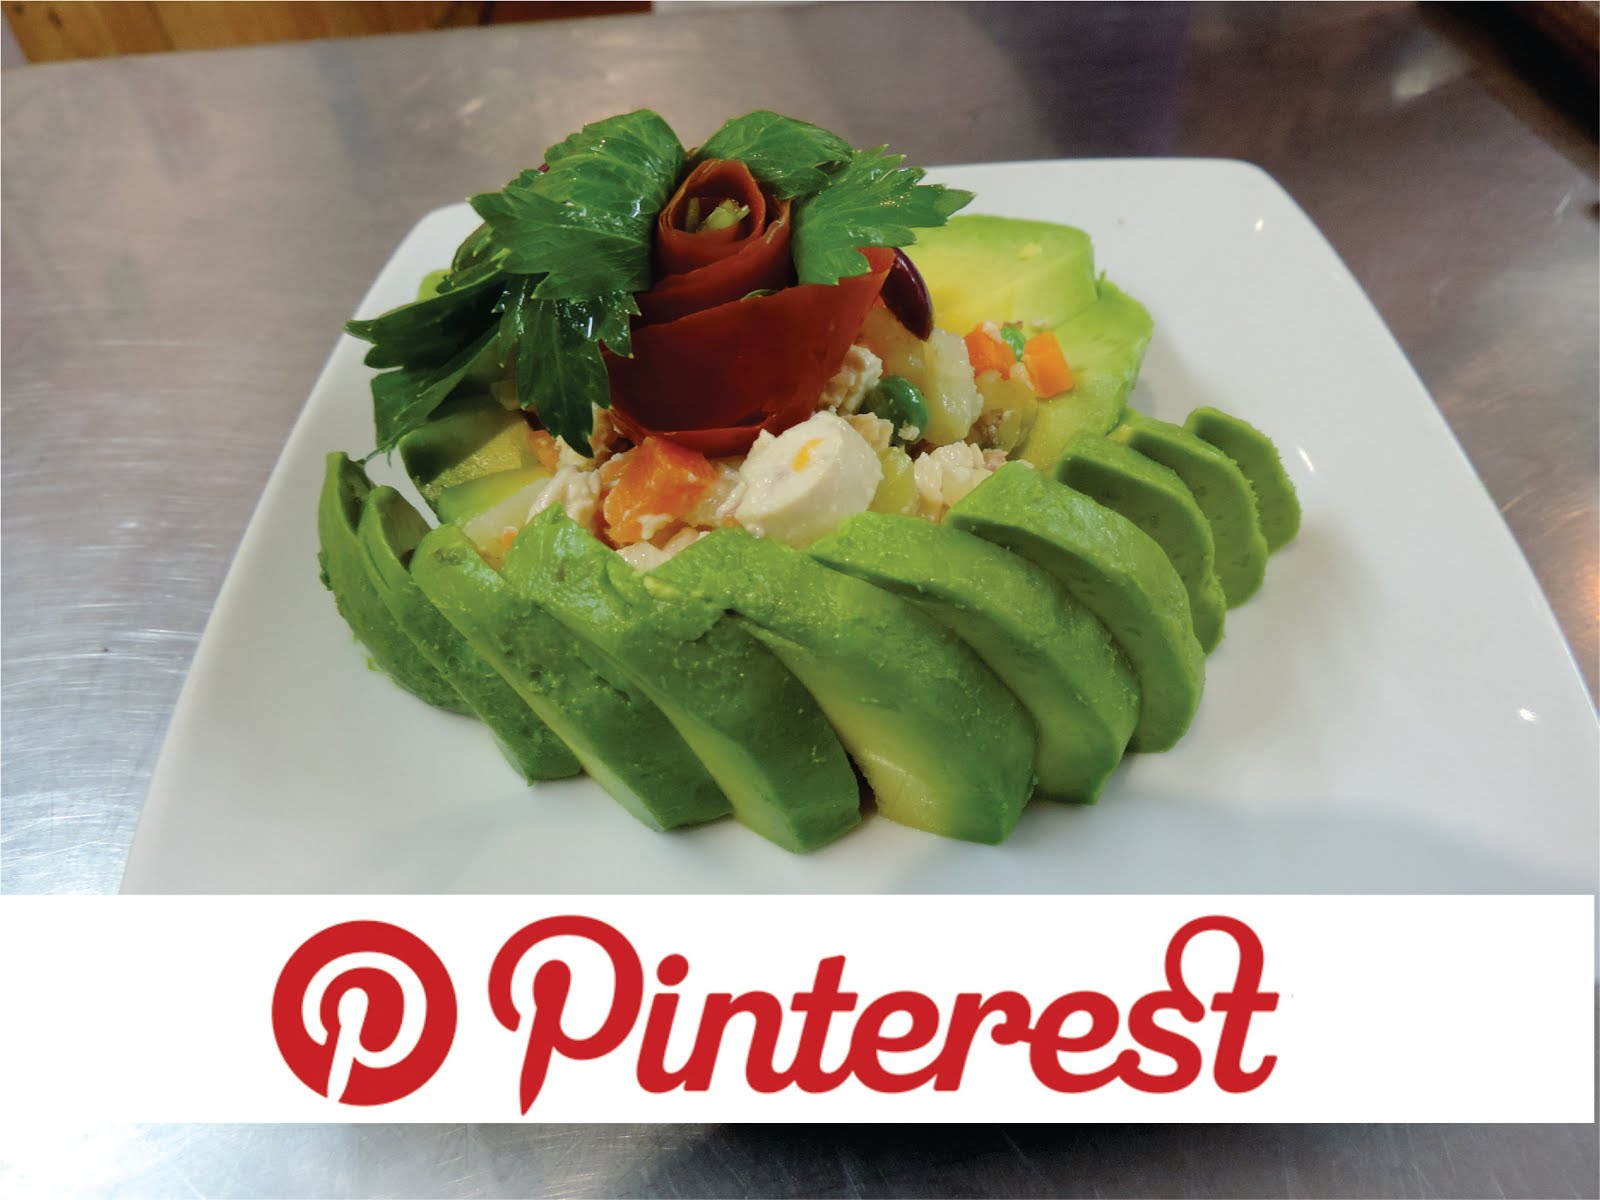 Peruvian Cooking Class on Pinterest